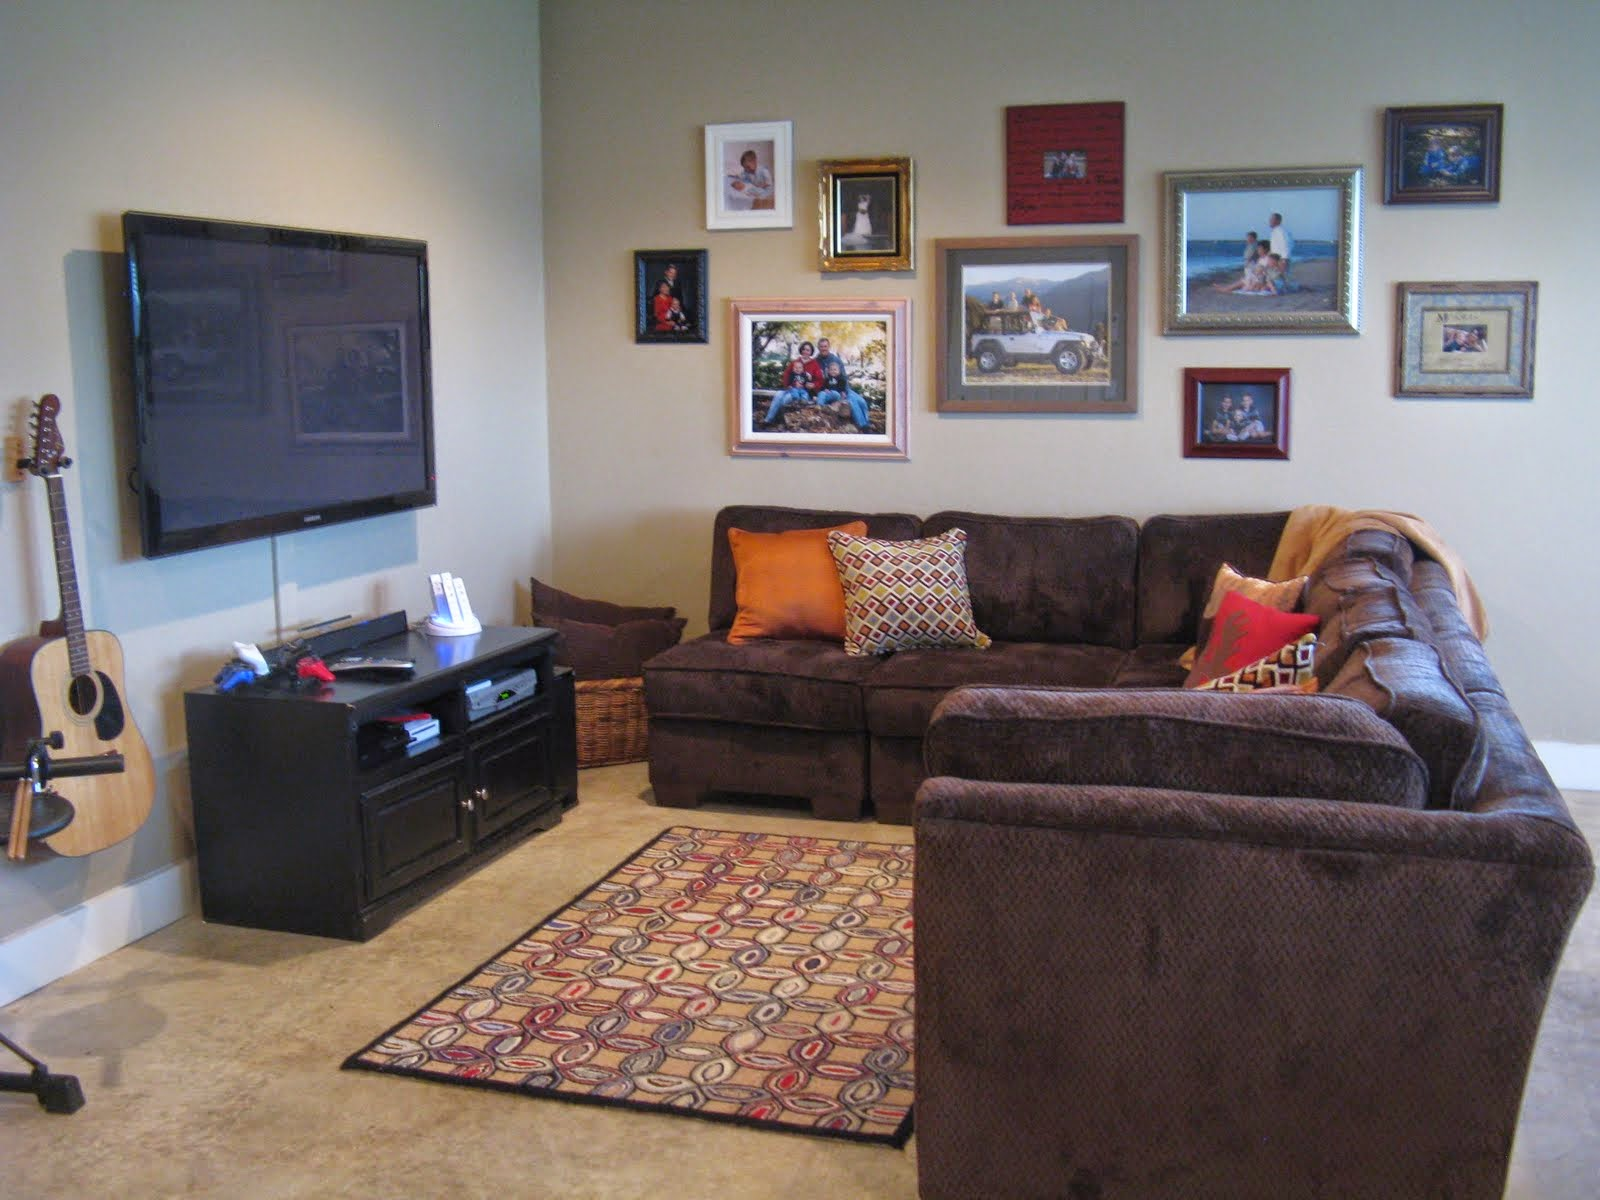 Incredible Basement Rec Room Decorating Ideas 1600 x 1200 · 204 kB · jpeg